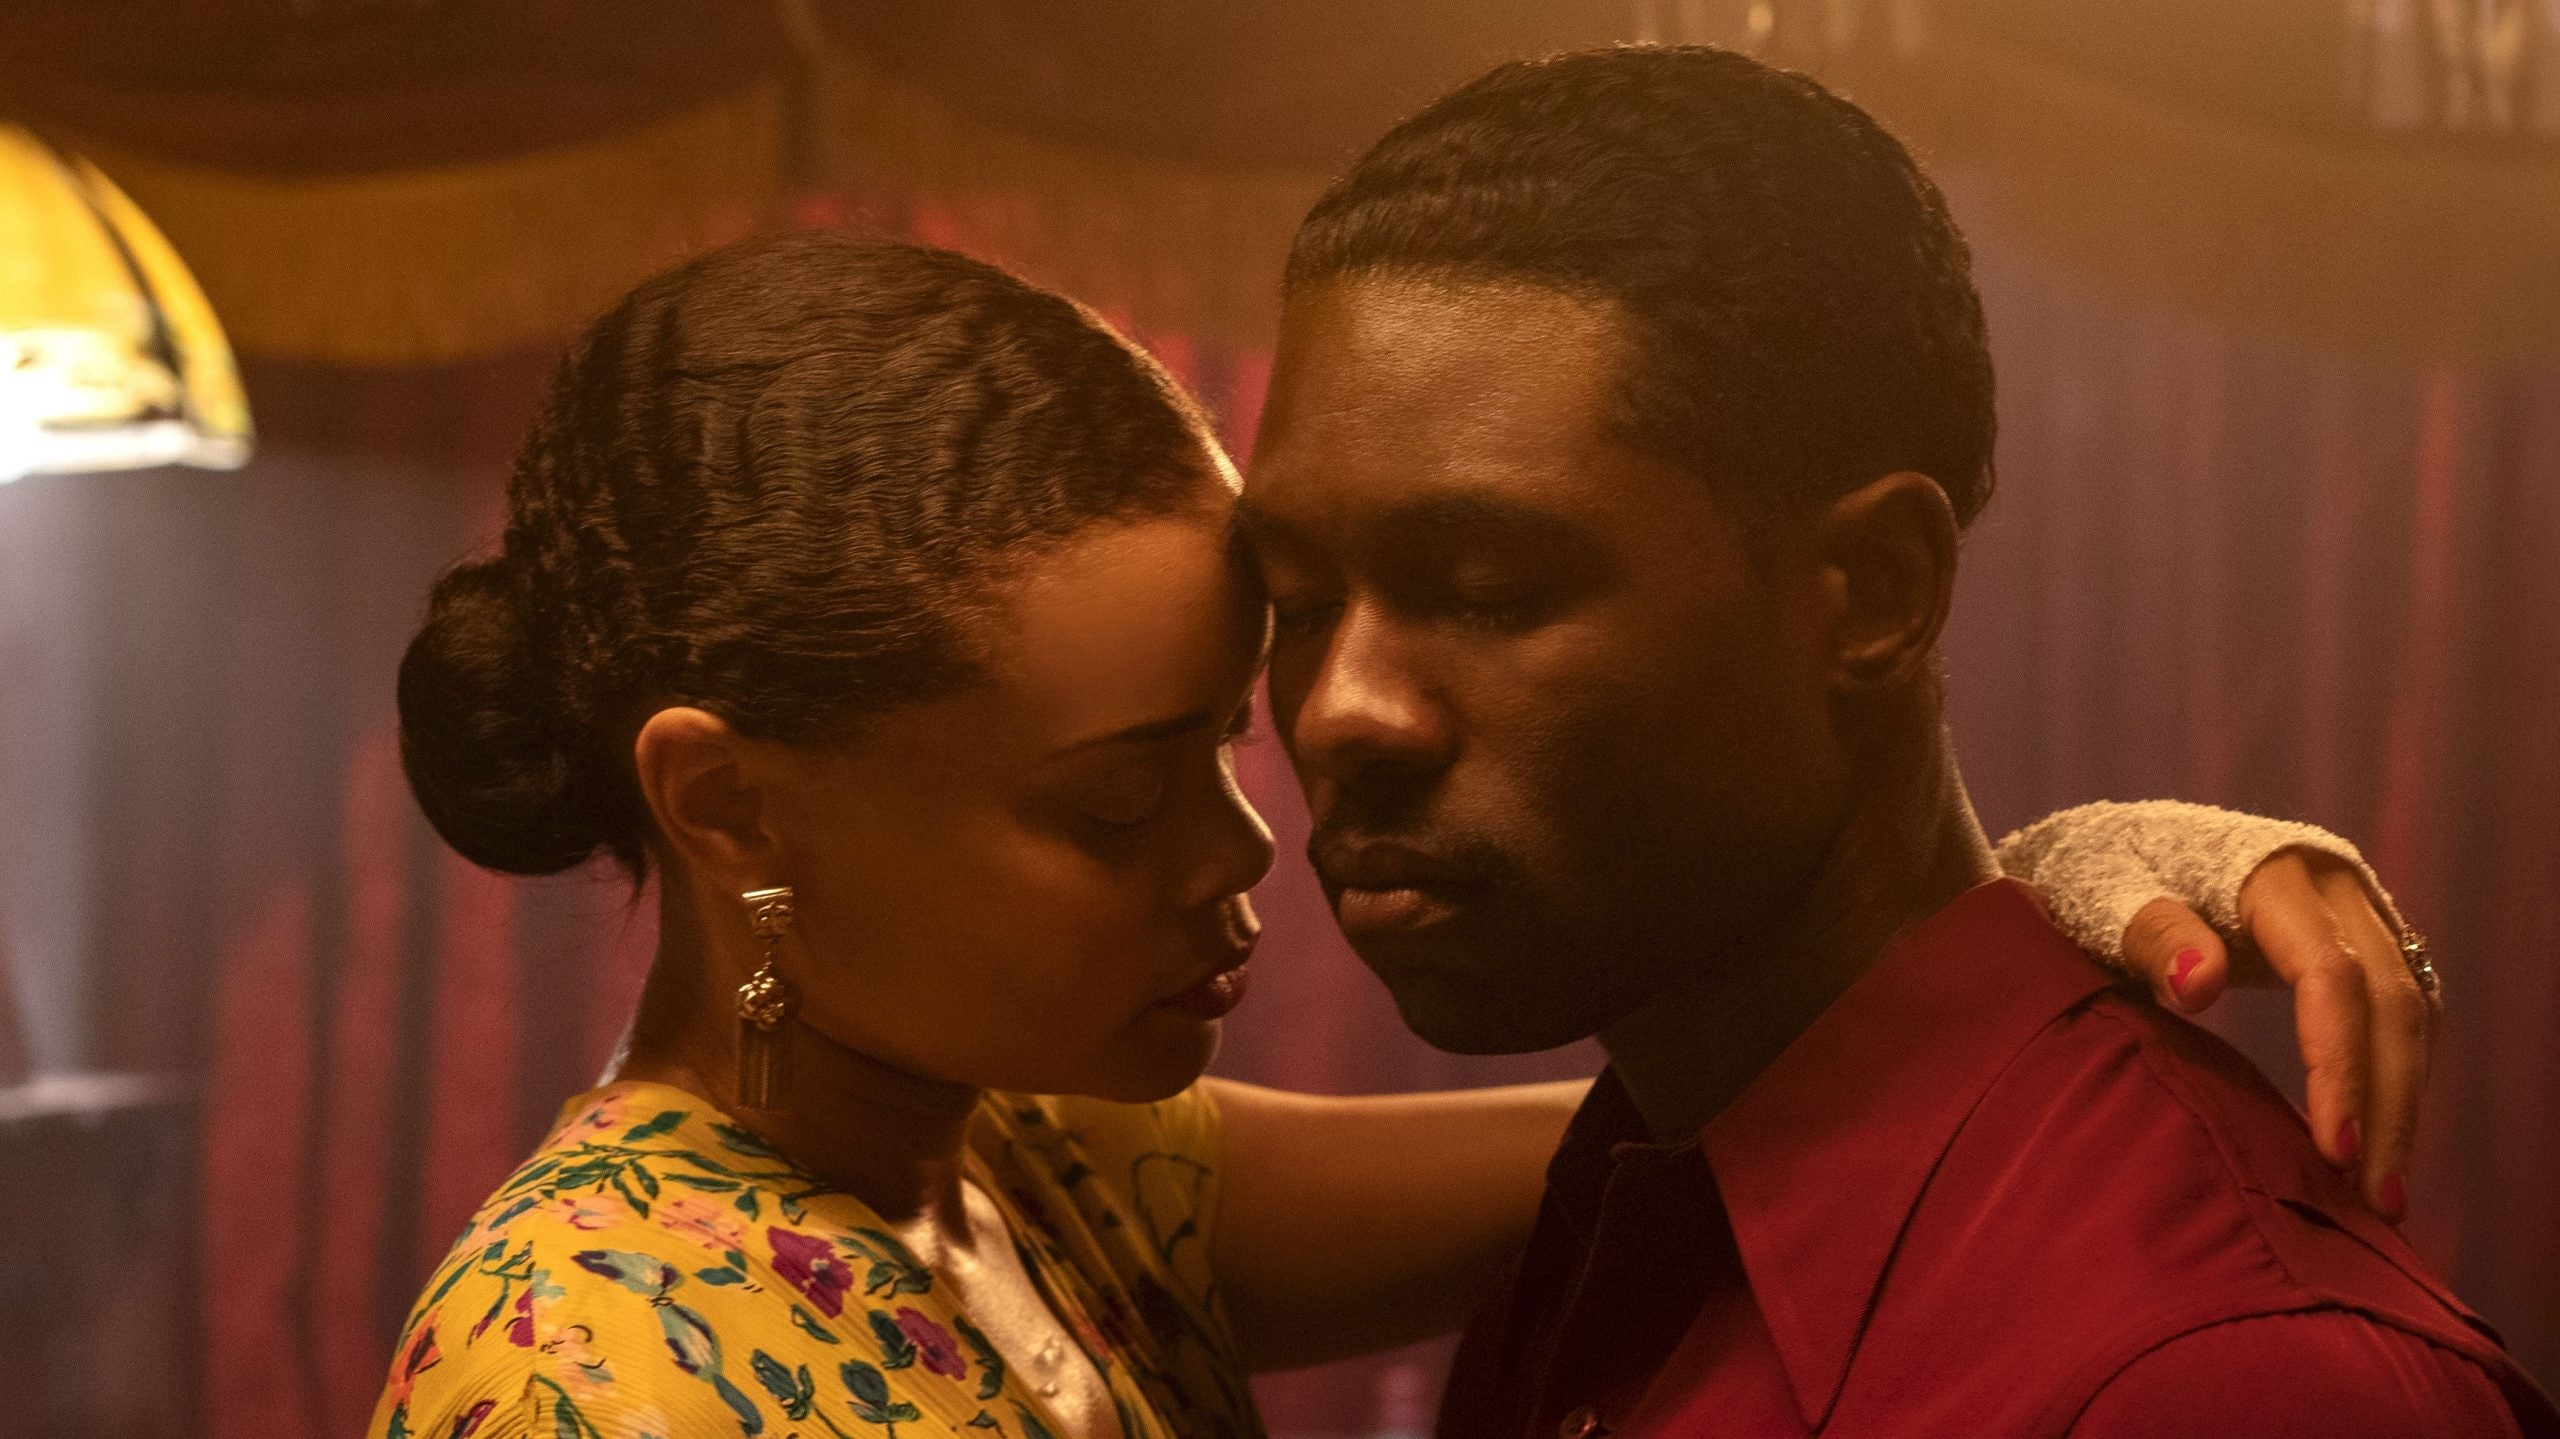 First Look: Andra Day and Trevante Rhodes in 'The United States vs. Billie Holiday'